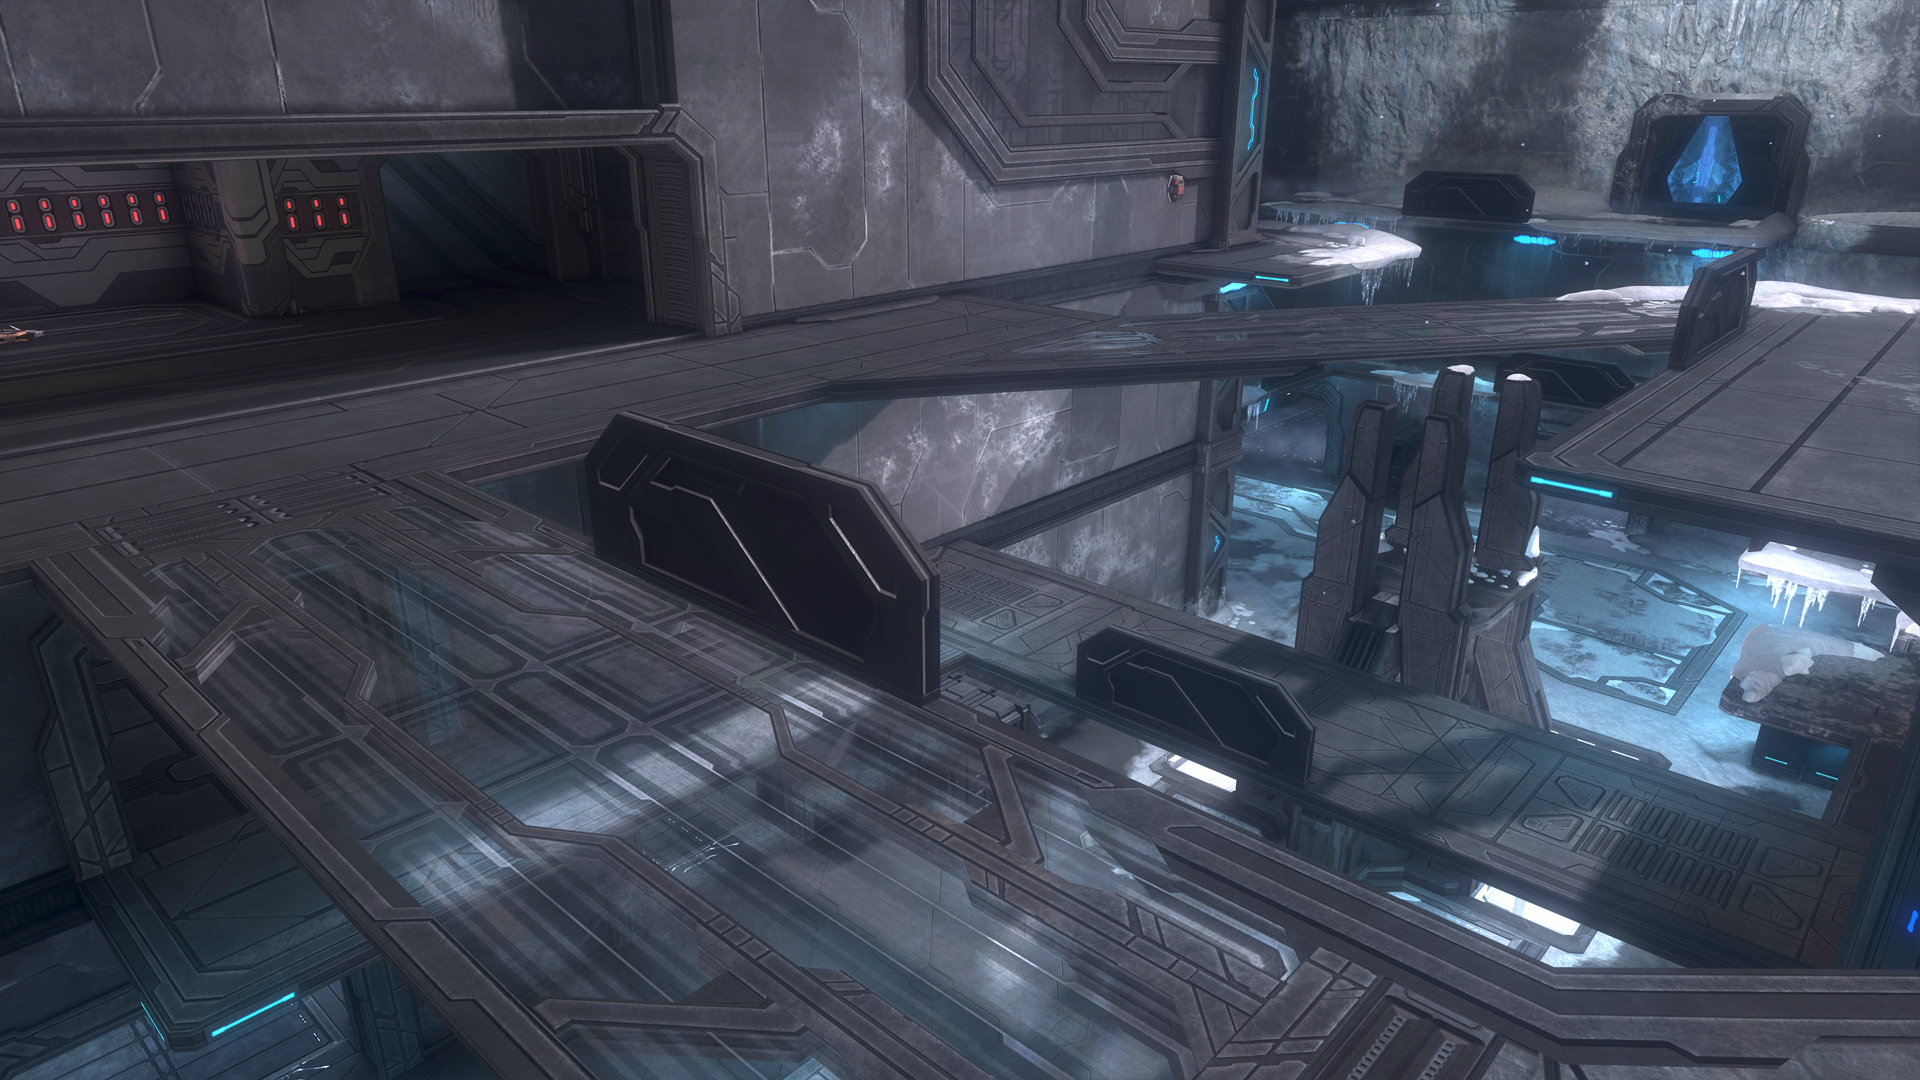 Images of Halo Mcc Multiplayer Map Layouts - #SpaceMood